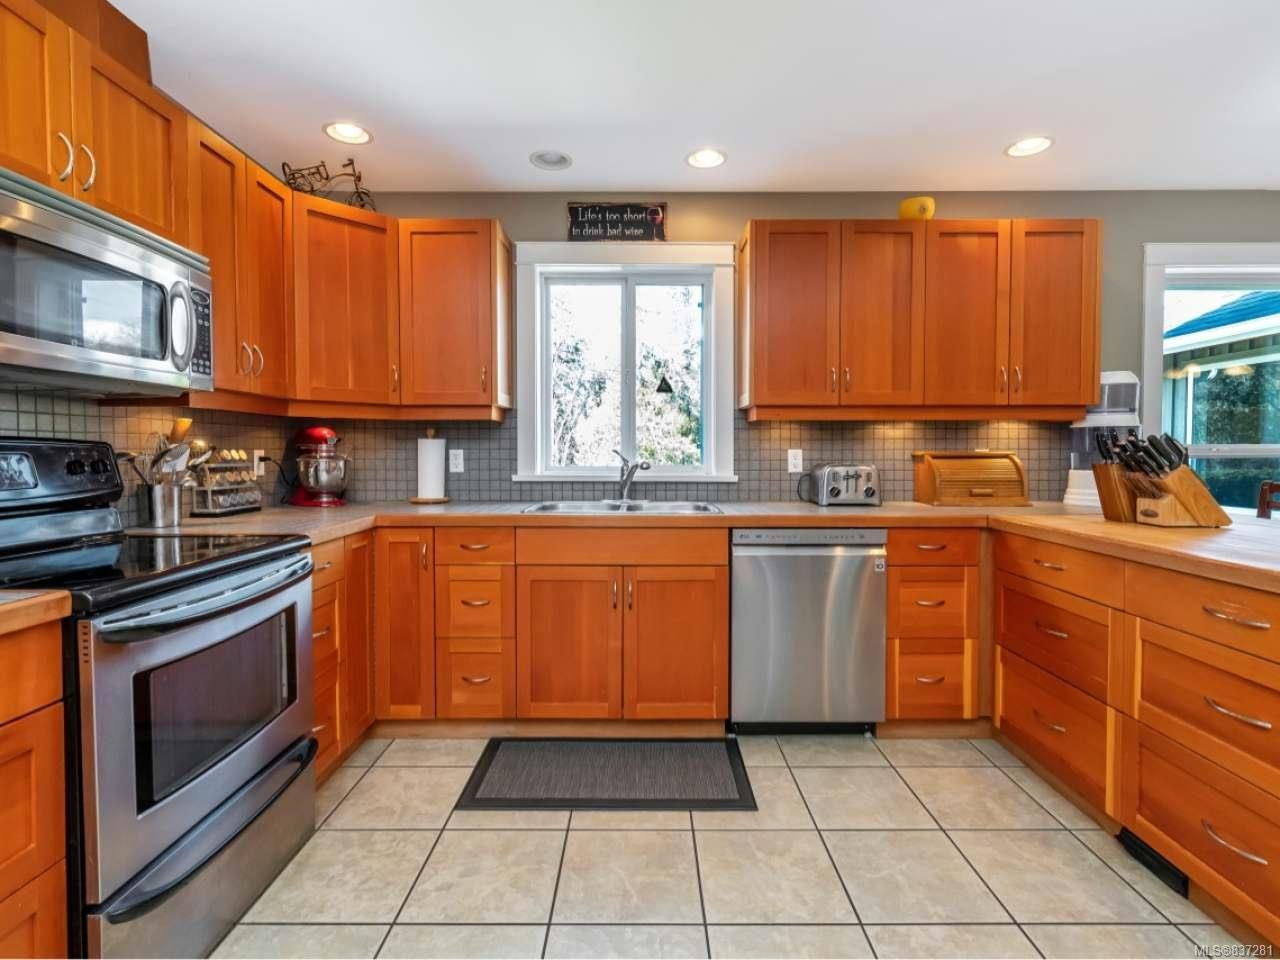 Photo 19: Photos: 925 Lilmac Rd in MILL BAY: ML Mill Bay House for sale (Malahat & Area)  : MLS®# 837281